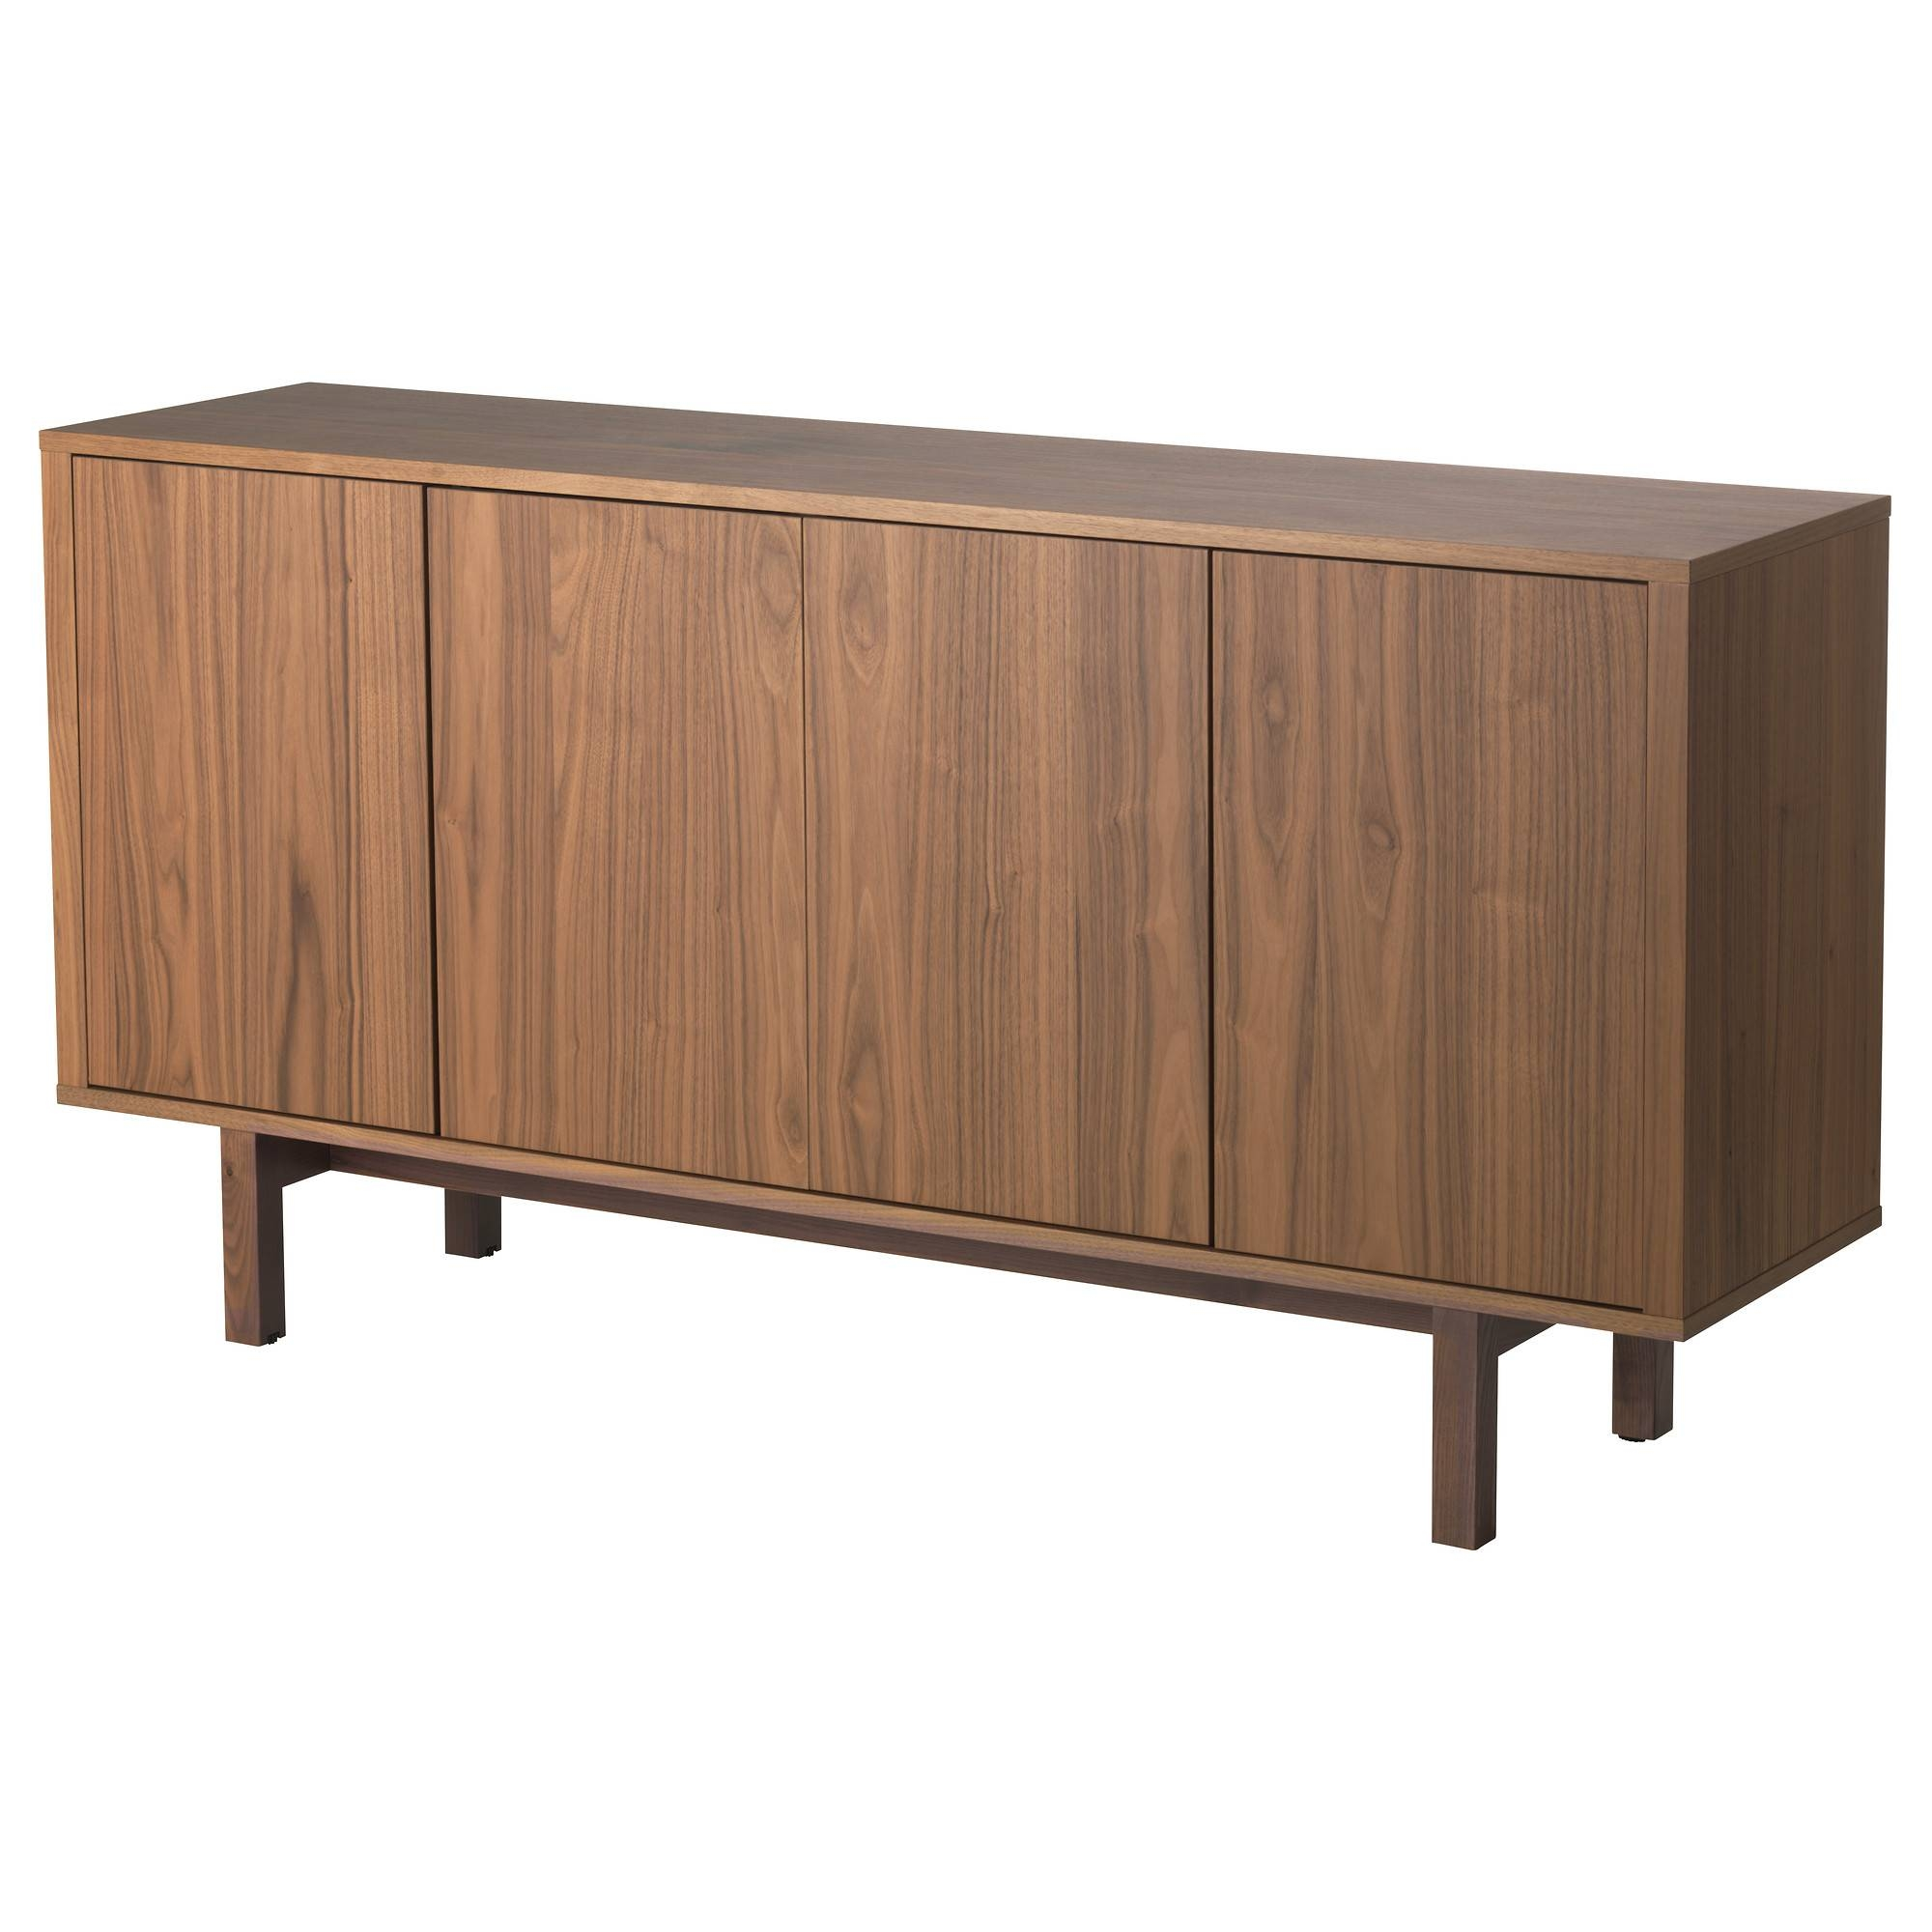 Buffet Tables & Sideboards - Ikea for Sideboard Units (Image 7 of 30)